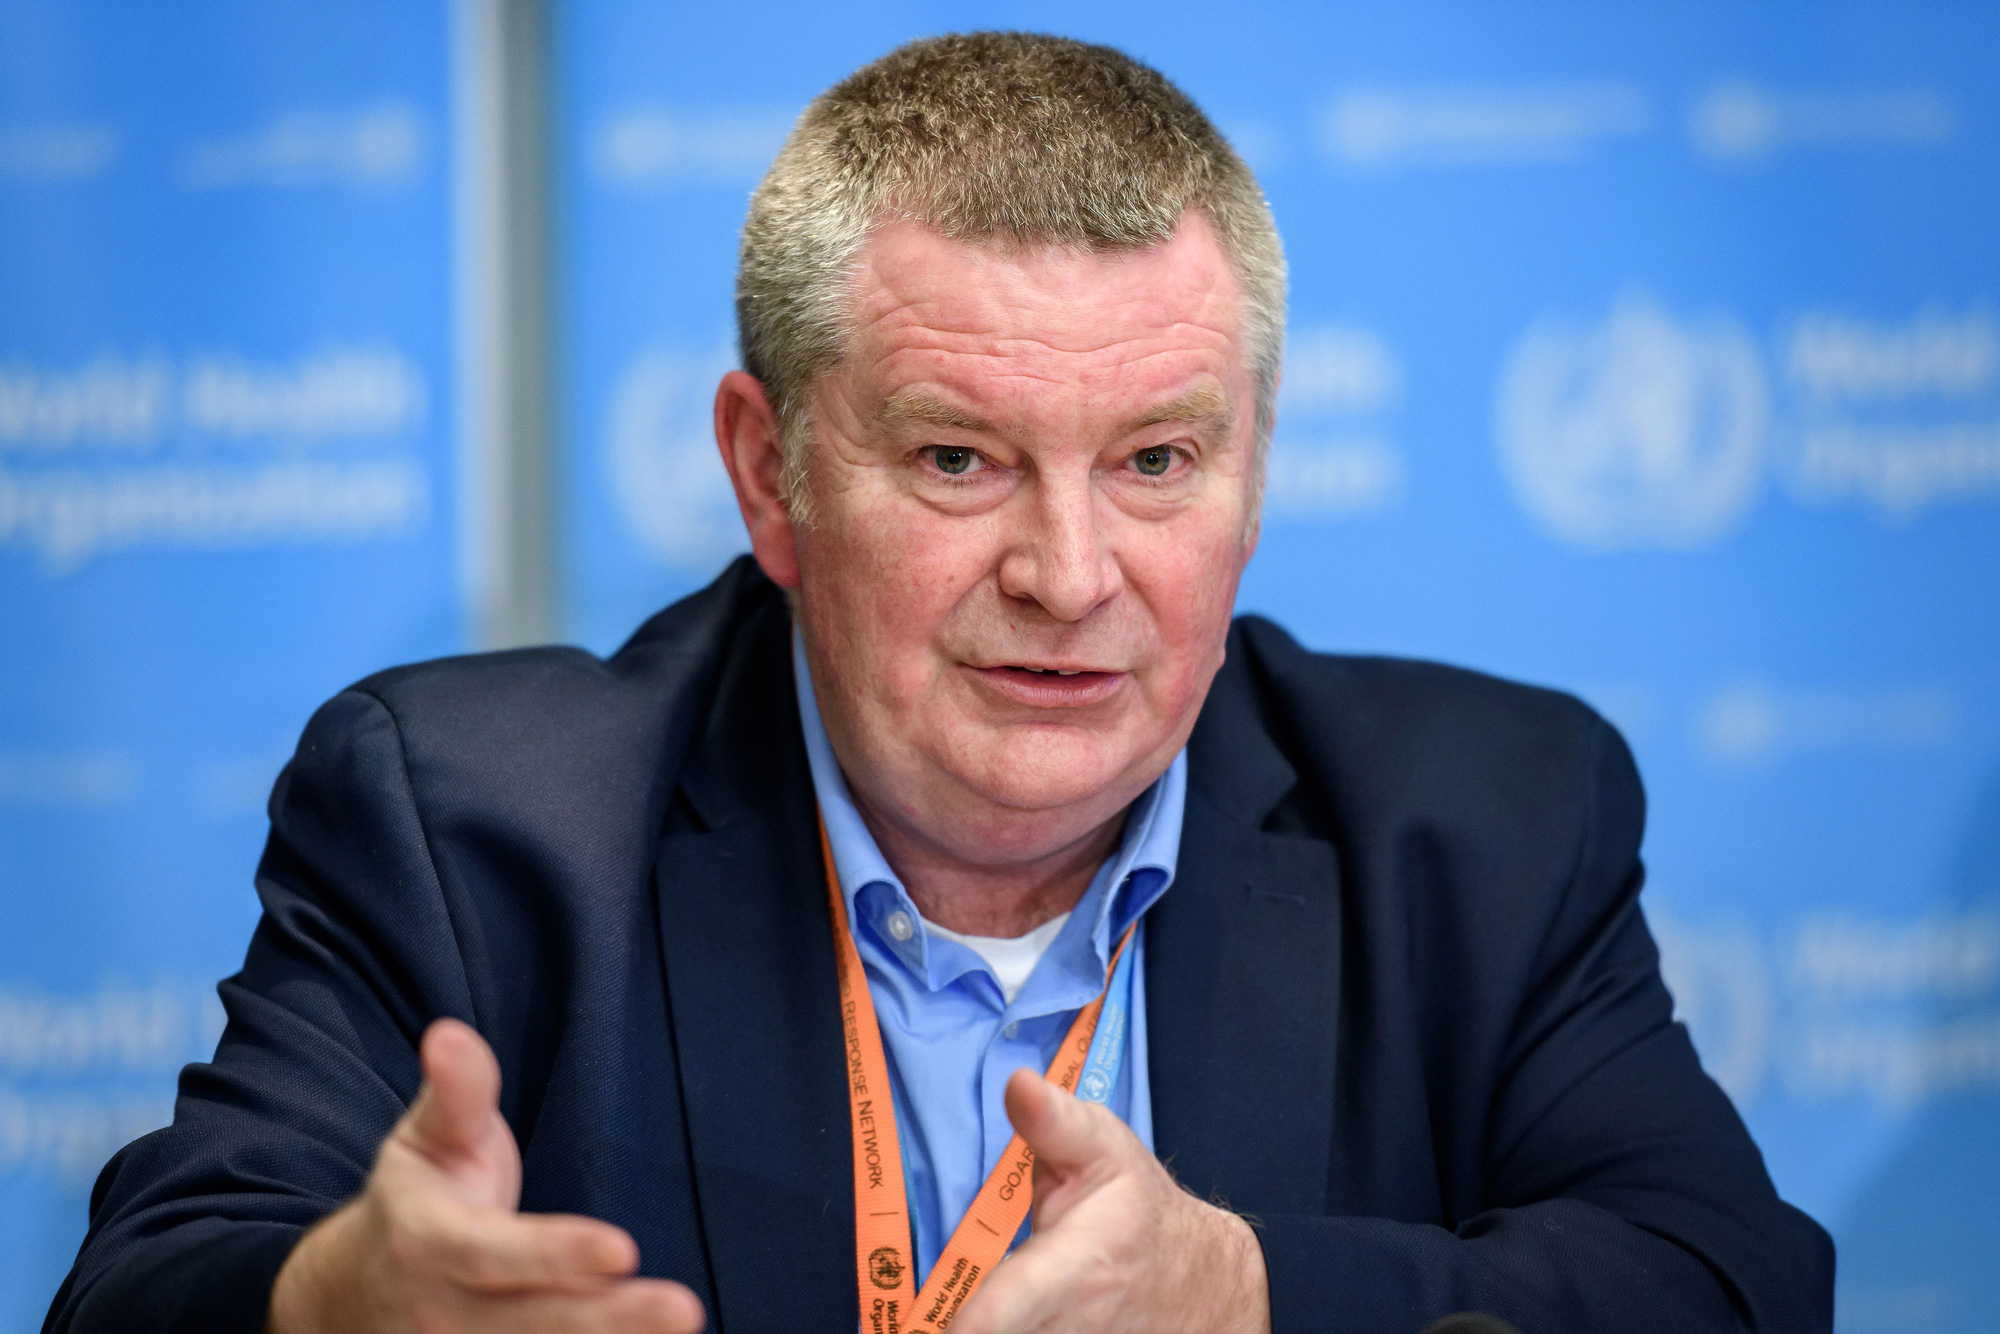 World Health Organization Health Emergencies Programme Director Dr. Michael Ryan speaks during a daily press briefing at the WHO headquarters in Geneva on March 9, 2020.